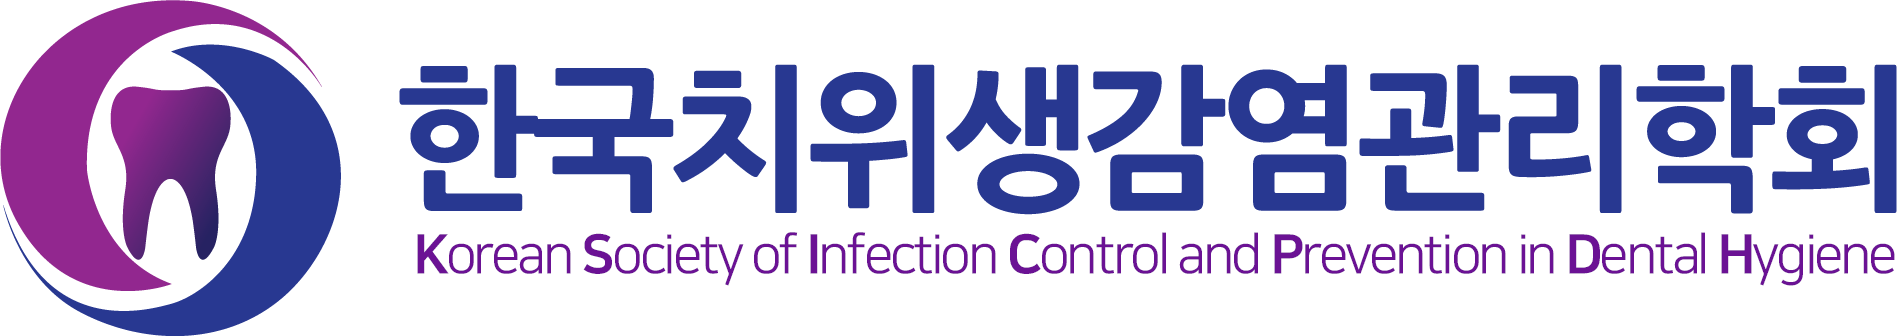 Korean Society of Infection Control and Prevention in Dental Hygiene